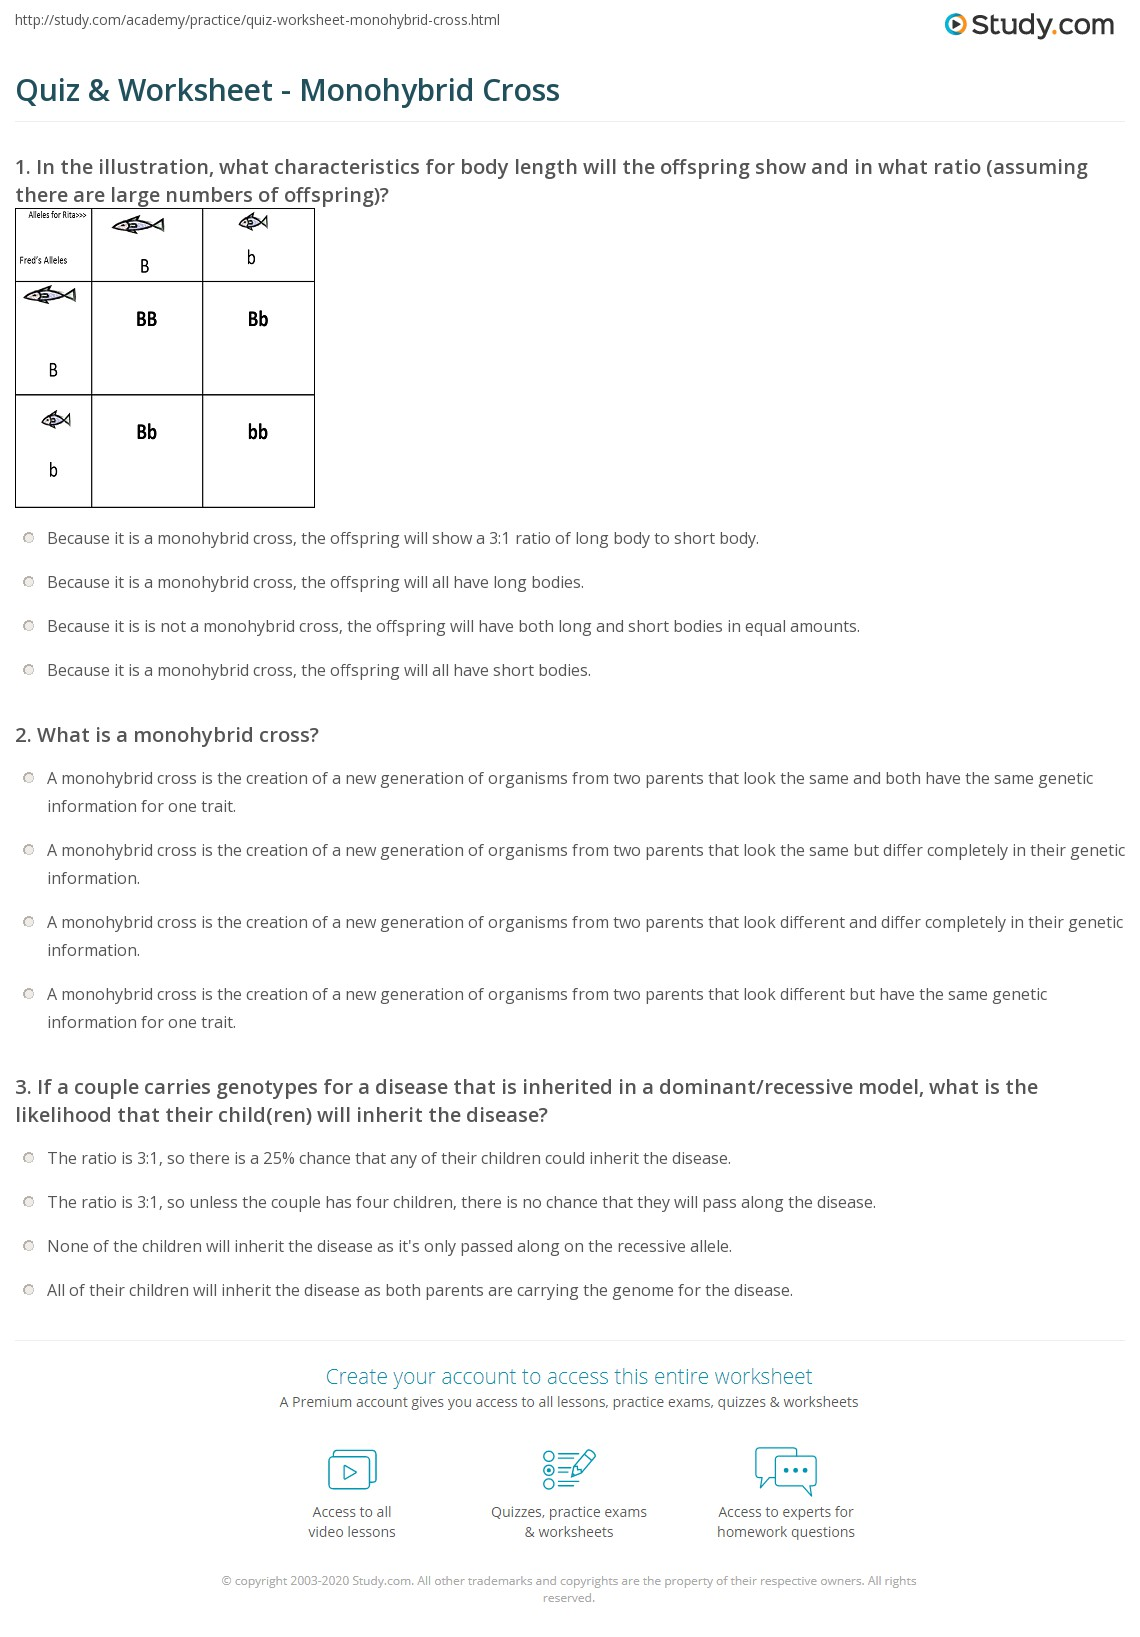 Quiz Worksheet Monohybrid Cross Study